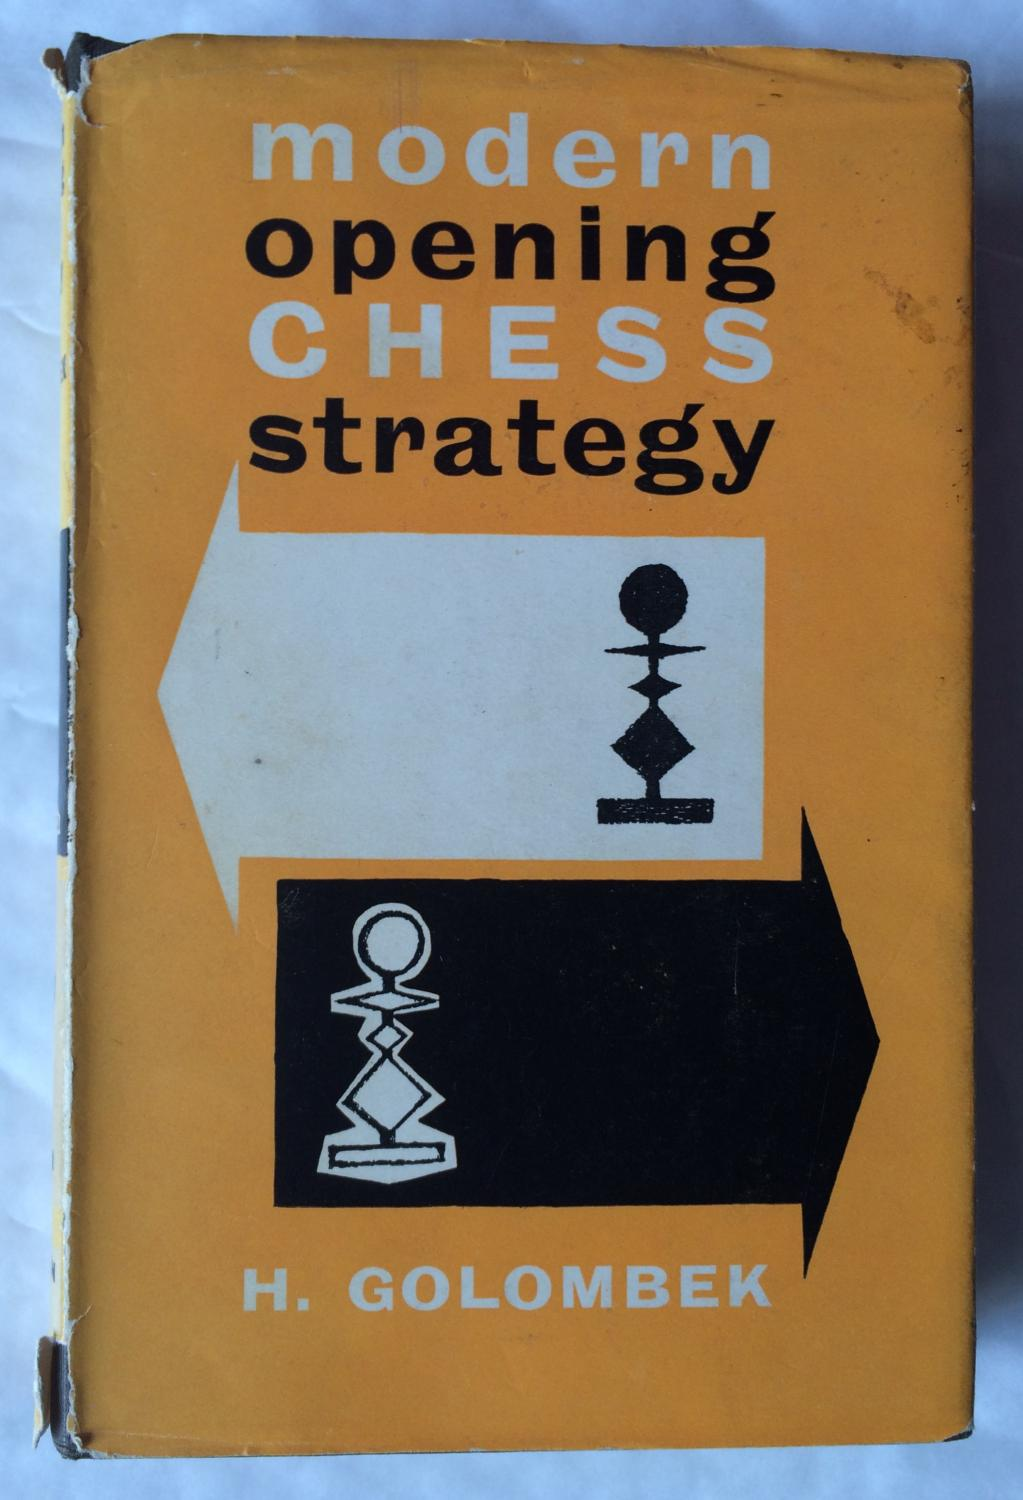 Modern Opening Chess Strategy, H, Golombek, Macgibbon & Kee, London (1960)